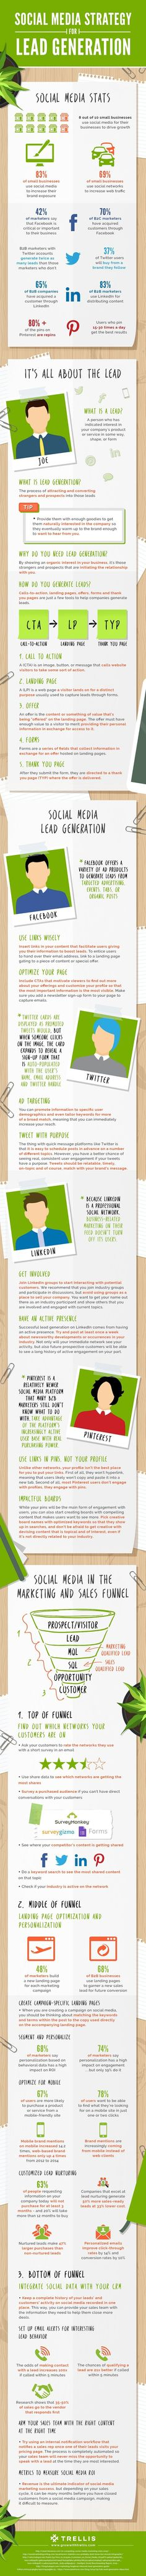 Social Media Strategy for Lead Generation [Infographic] AND Take this Free Full Lenght Video Training on HOW to Start an Online Business The complete toolbox that gives you everything you need to start a profitable online business! Inbound Marketing, Marketing Trends, Marketing En Internet, Marketing Services, Facebook Marketing, Online Marketing, Social Media Marketing, Content Marketing, Marketing Technology